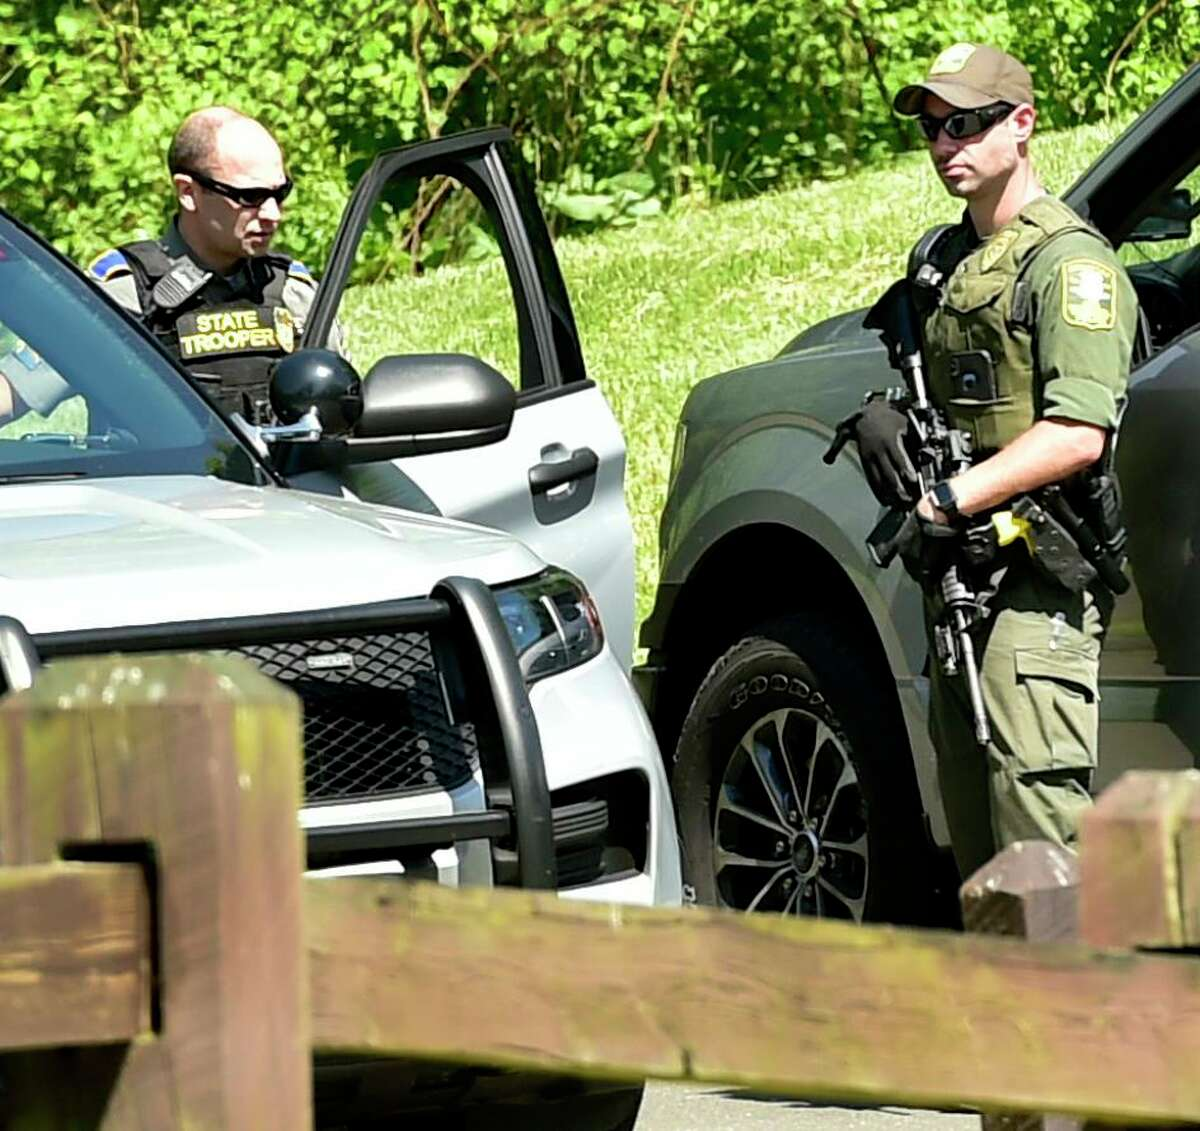 A Connecticut Department of Energy and Environmantal Protection officer, right, talks with a state trooper Sunday during the search for suspected murderer Peter Manfredonia, 23, described as armed and dangerous Sunday morning at Osbornedale State Park in Derby after a stolen vehicle linked to the suspect was found on Hawthorne Avenue near Cullens Hill Road in Derby. The area borders Osbornedale State Park.The discovery launched an extensive search of the park and on local streets and in neighborhoods near Osbornedale and Roosevelt Drive where law enforcement secured another crime scene thought to be connected to Manfredonia. State Police said Manfredonia is believed to be armed with pistol and long guns. Manfredonia is wanted in a homicide and serious assault in northeastern Connecticut.